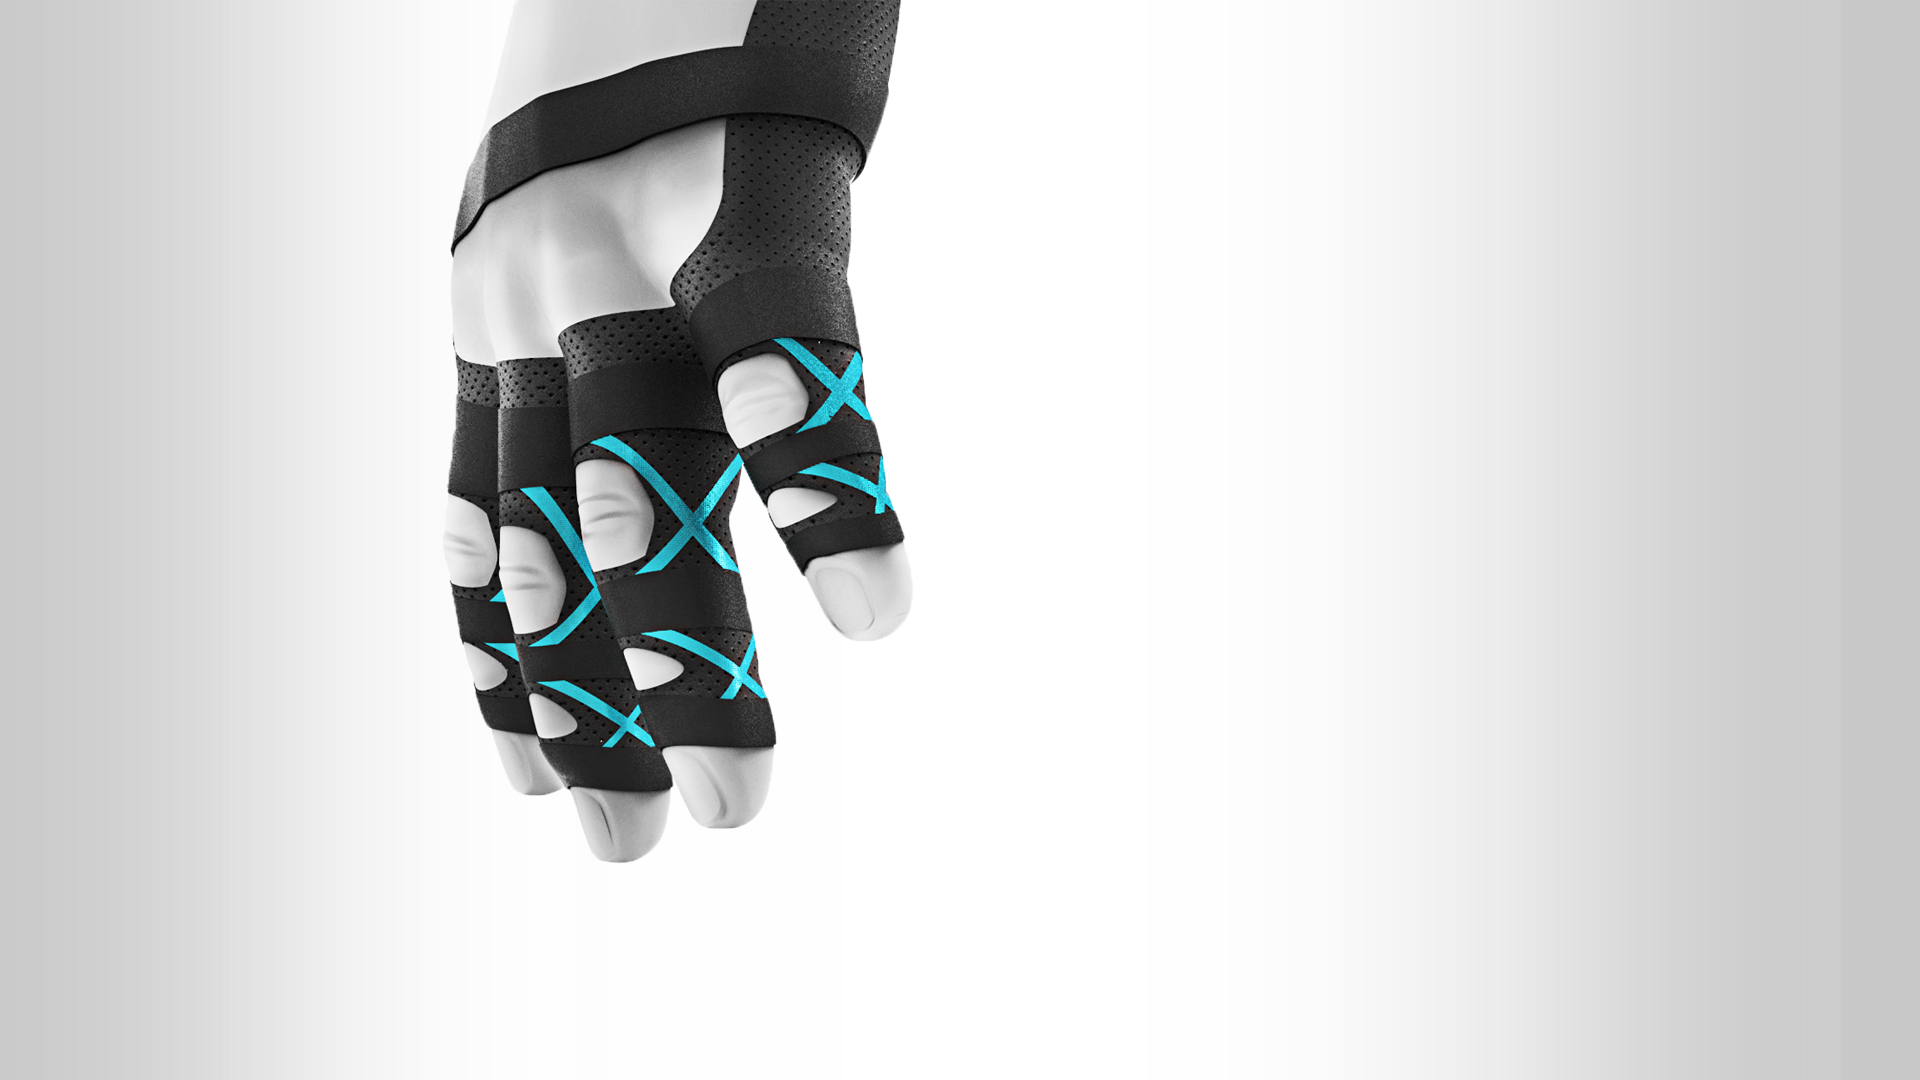 THE FUTURE OF</br>PROTECTIVE WEARABLES